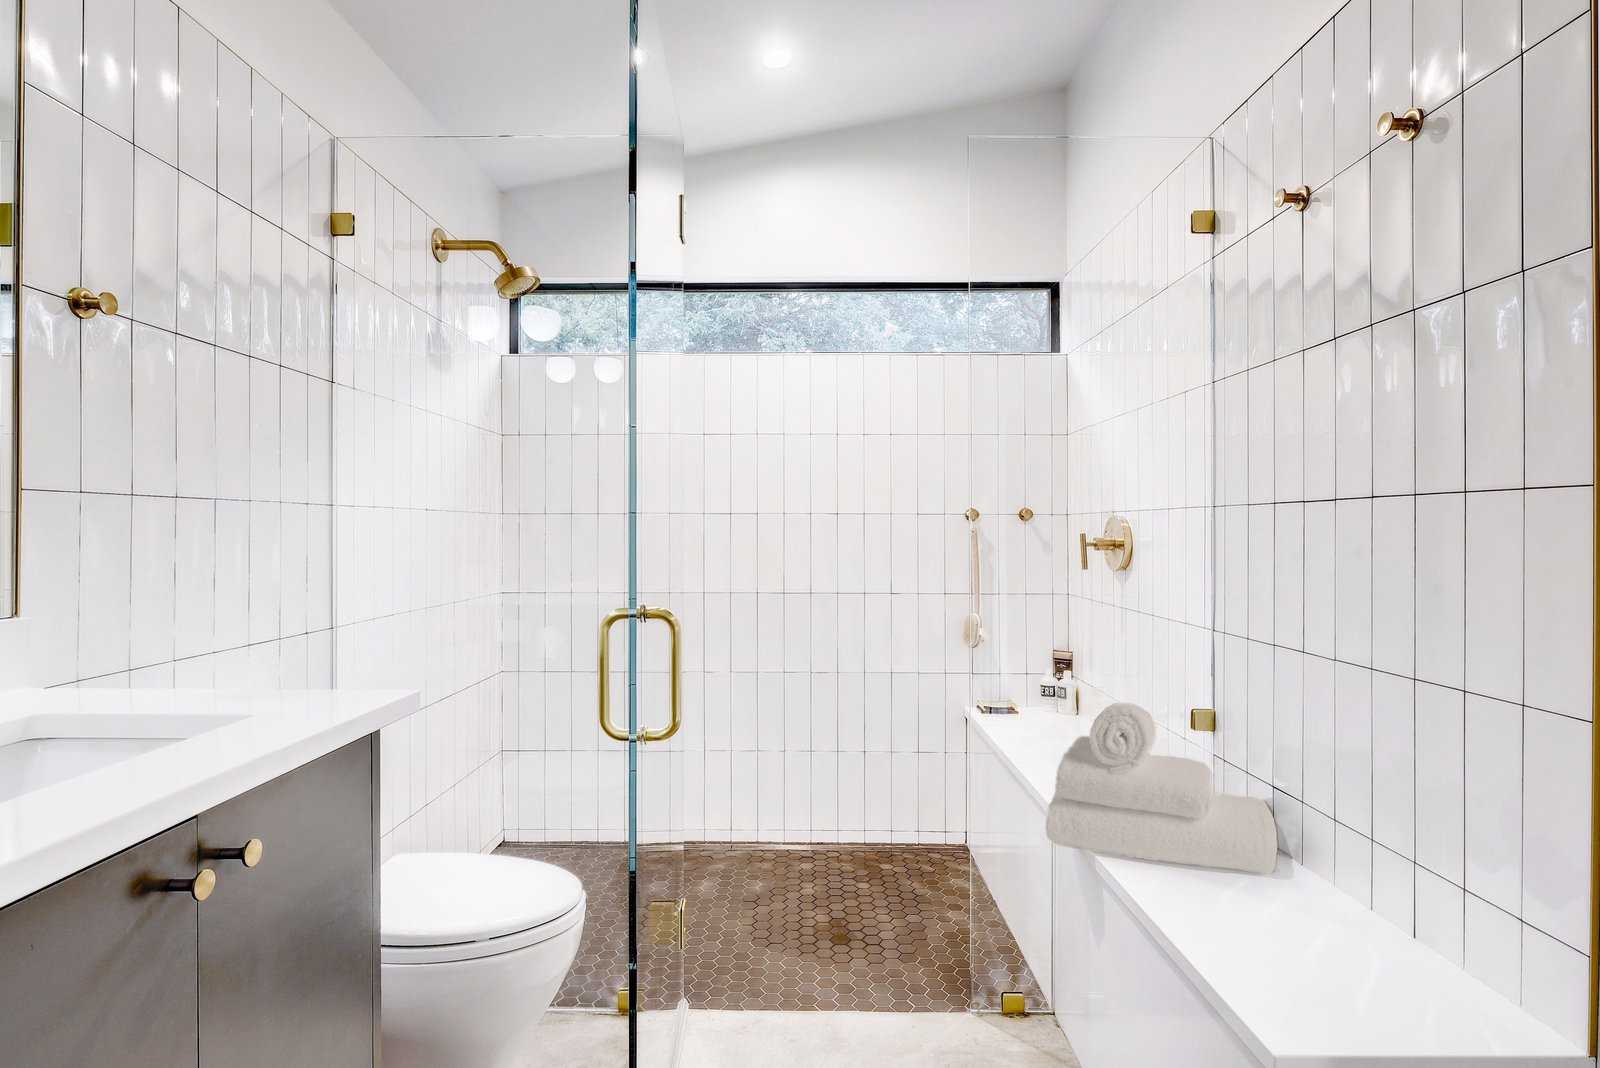 Bath Room, Subway Tile Wall, Drop In Sink, Enclosed Shower, Cement Tile Floor, Recessed Lighting, Ceiling Lighting, Full Shower, Concrete Floor, and One Piece Toilet Re-Open House by Matt Fajkus Architecture | Photo by Twist Tours  Re-Open House by Matt Fajkus Architecture